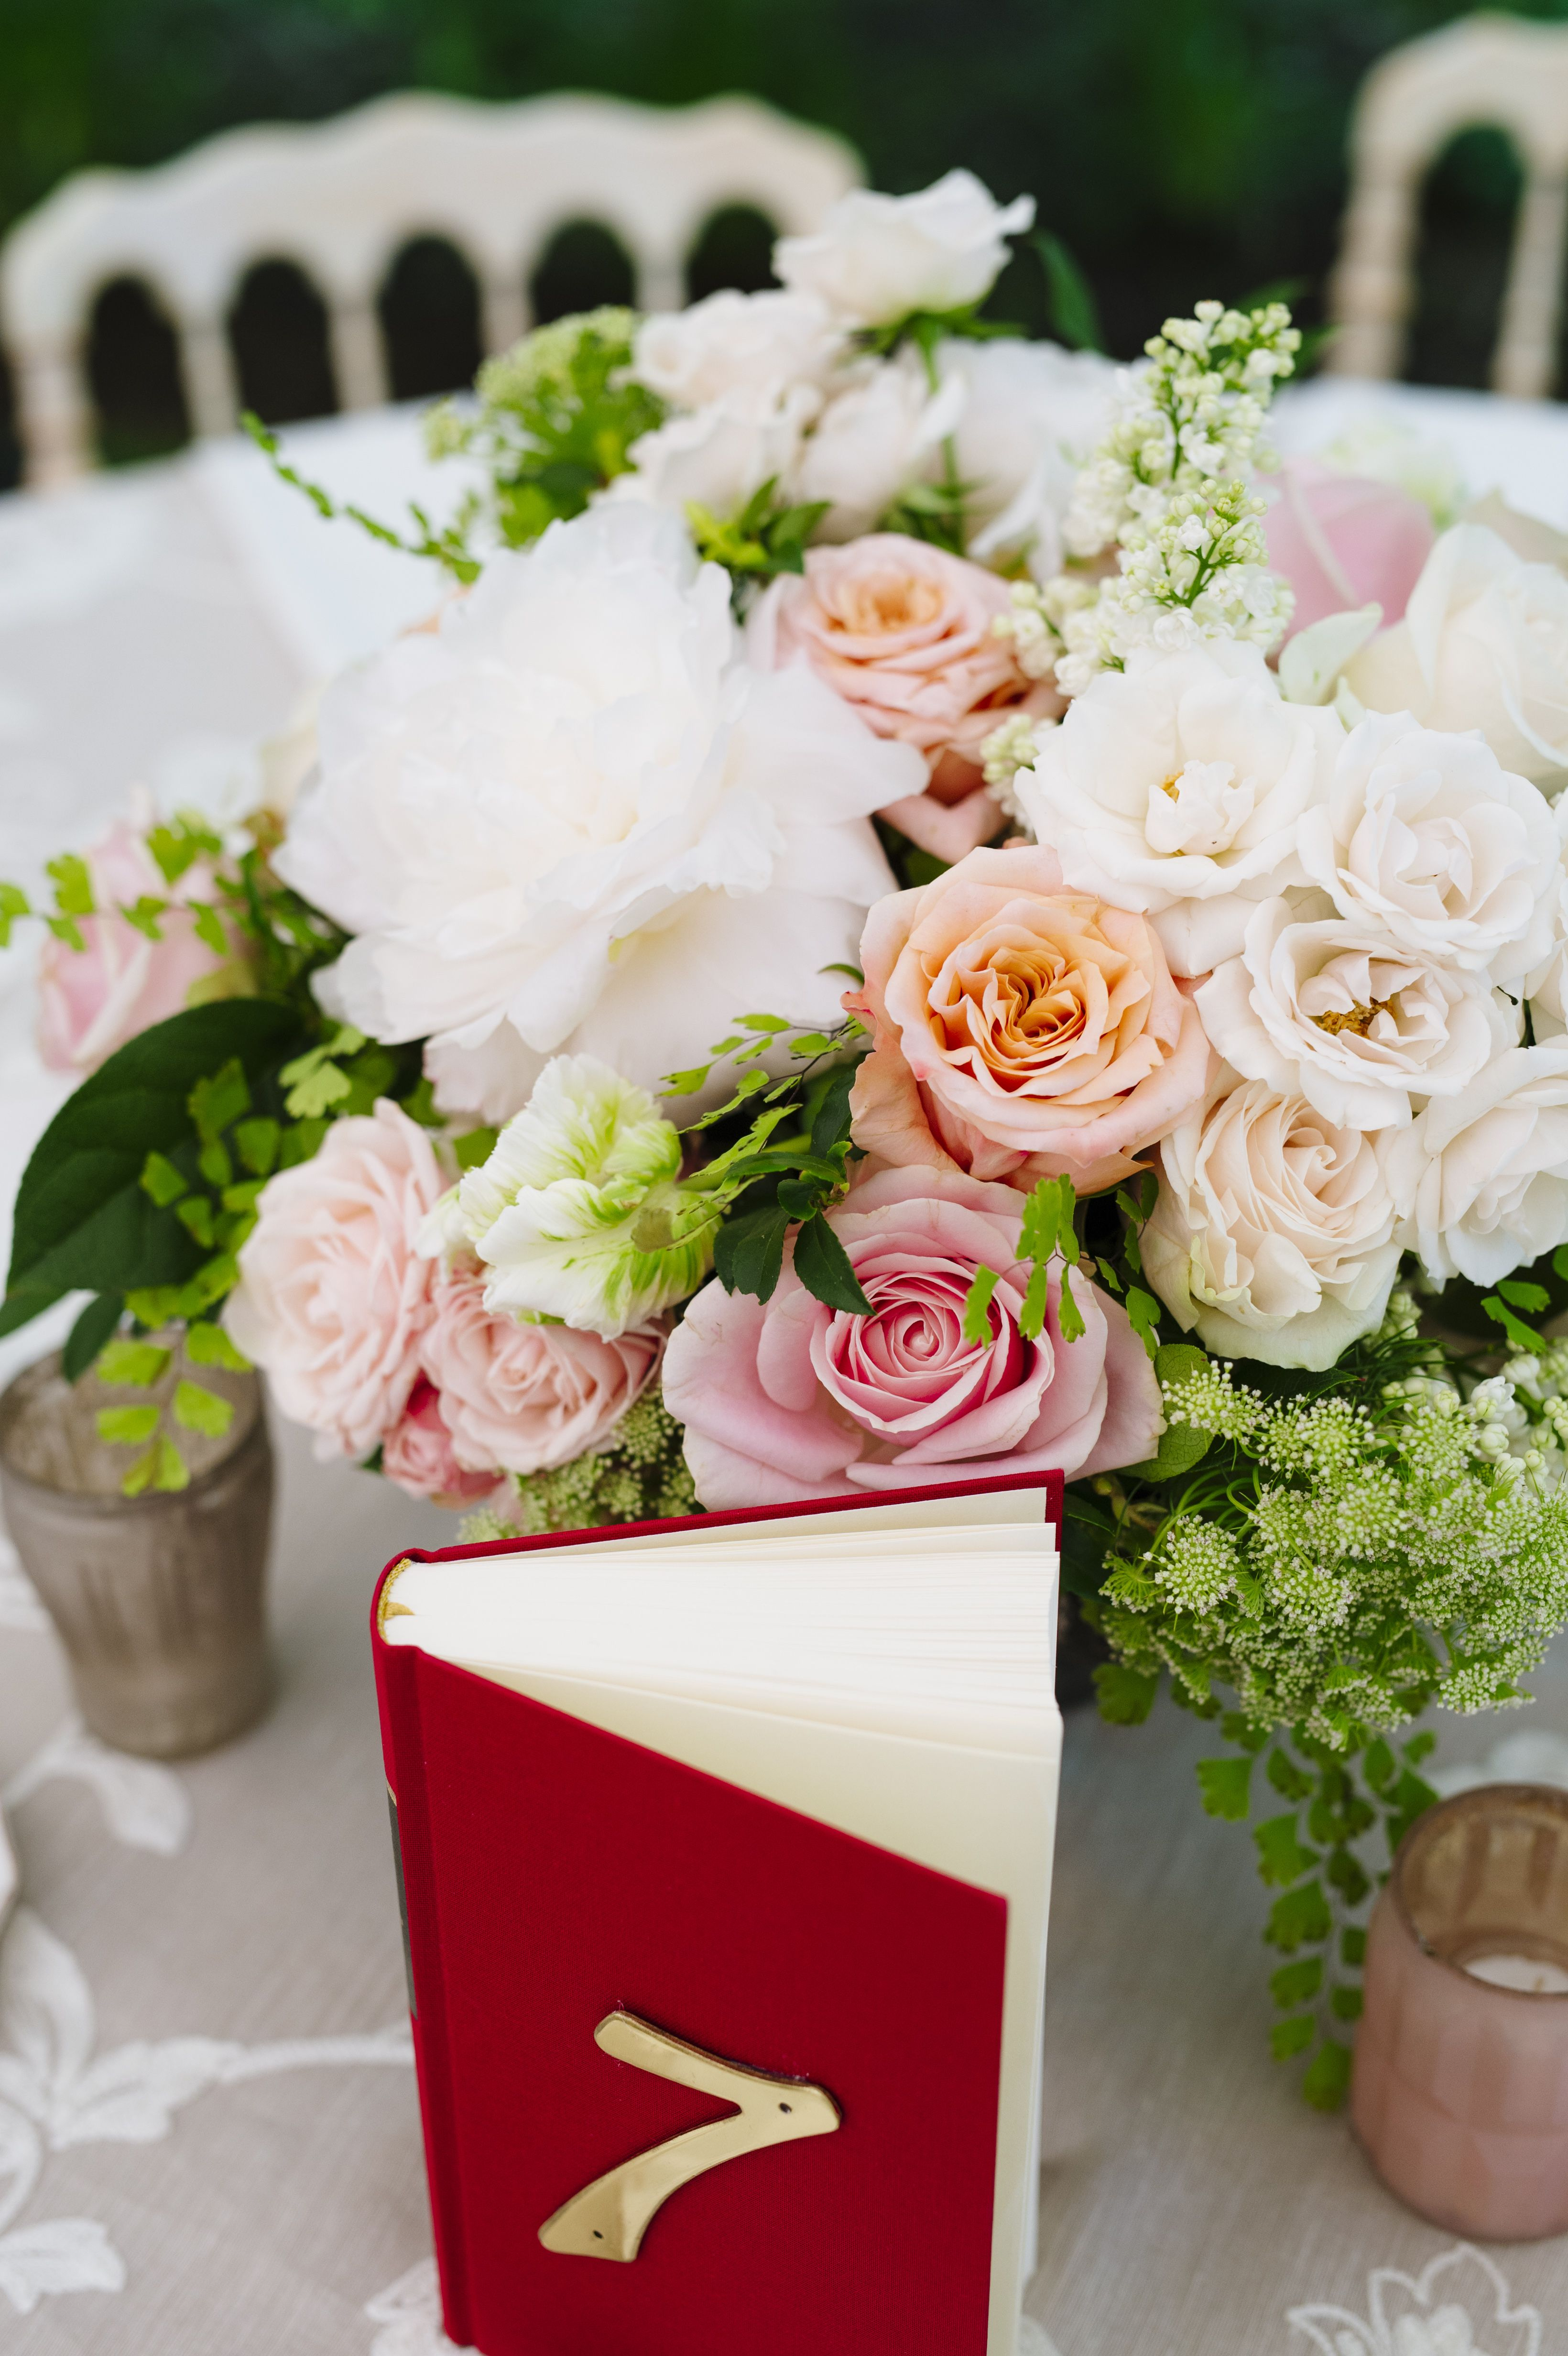 Interested In Making Your Own Centerpieces Or Bouquets We Can Help Learn More About